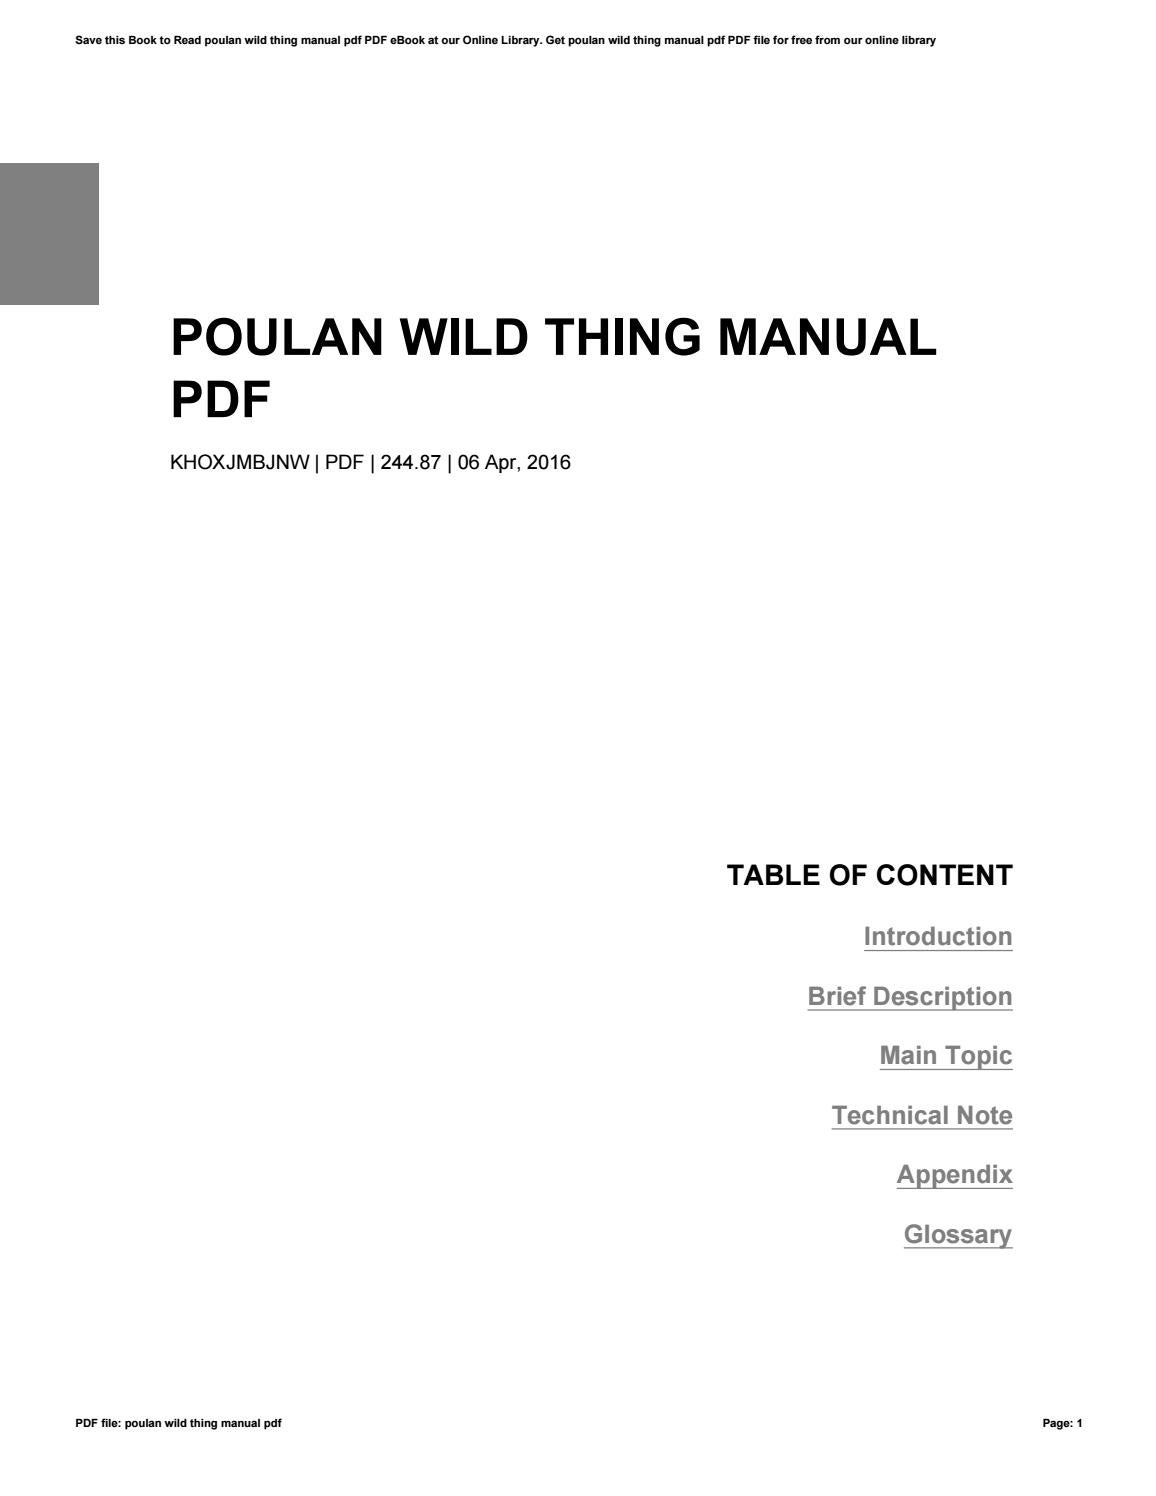 poulan wild thing user manual ebook